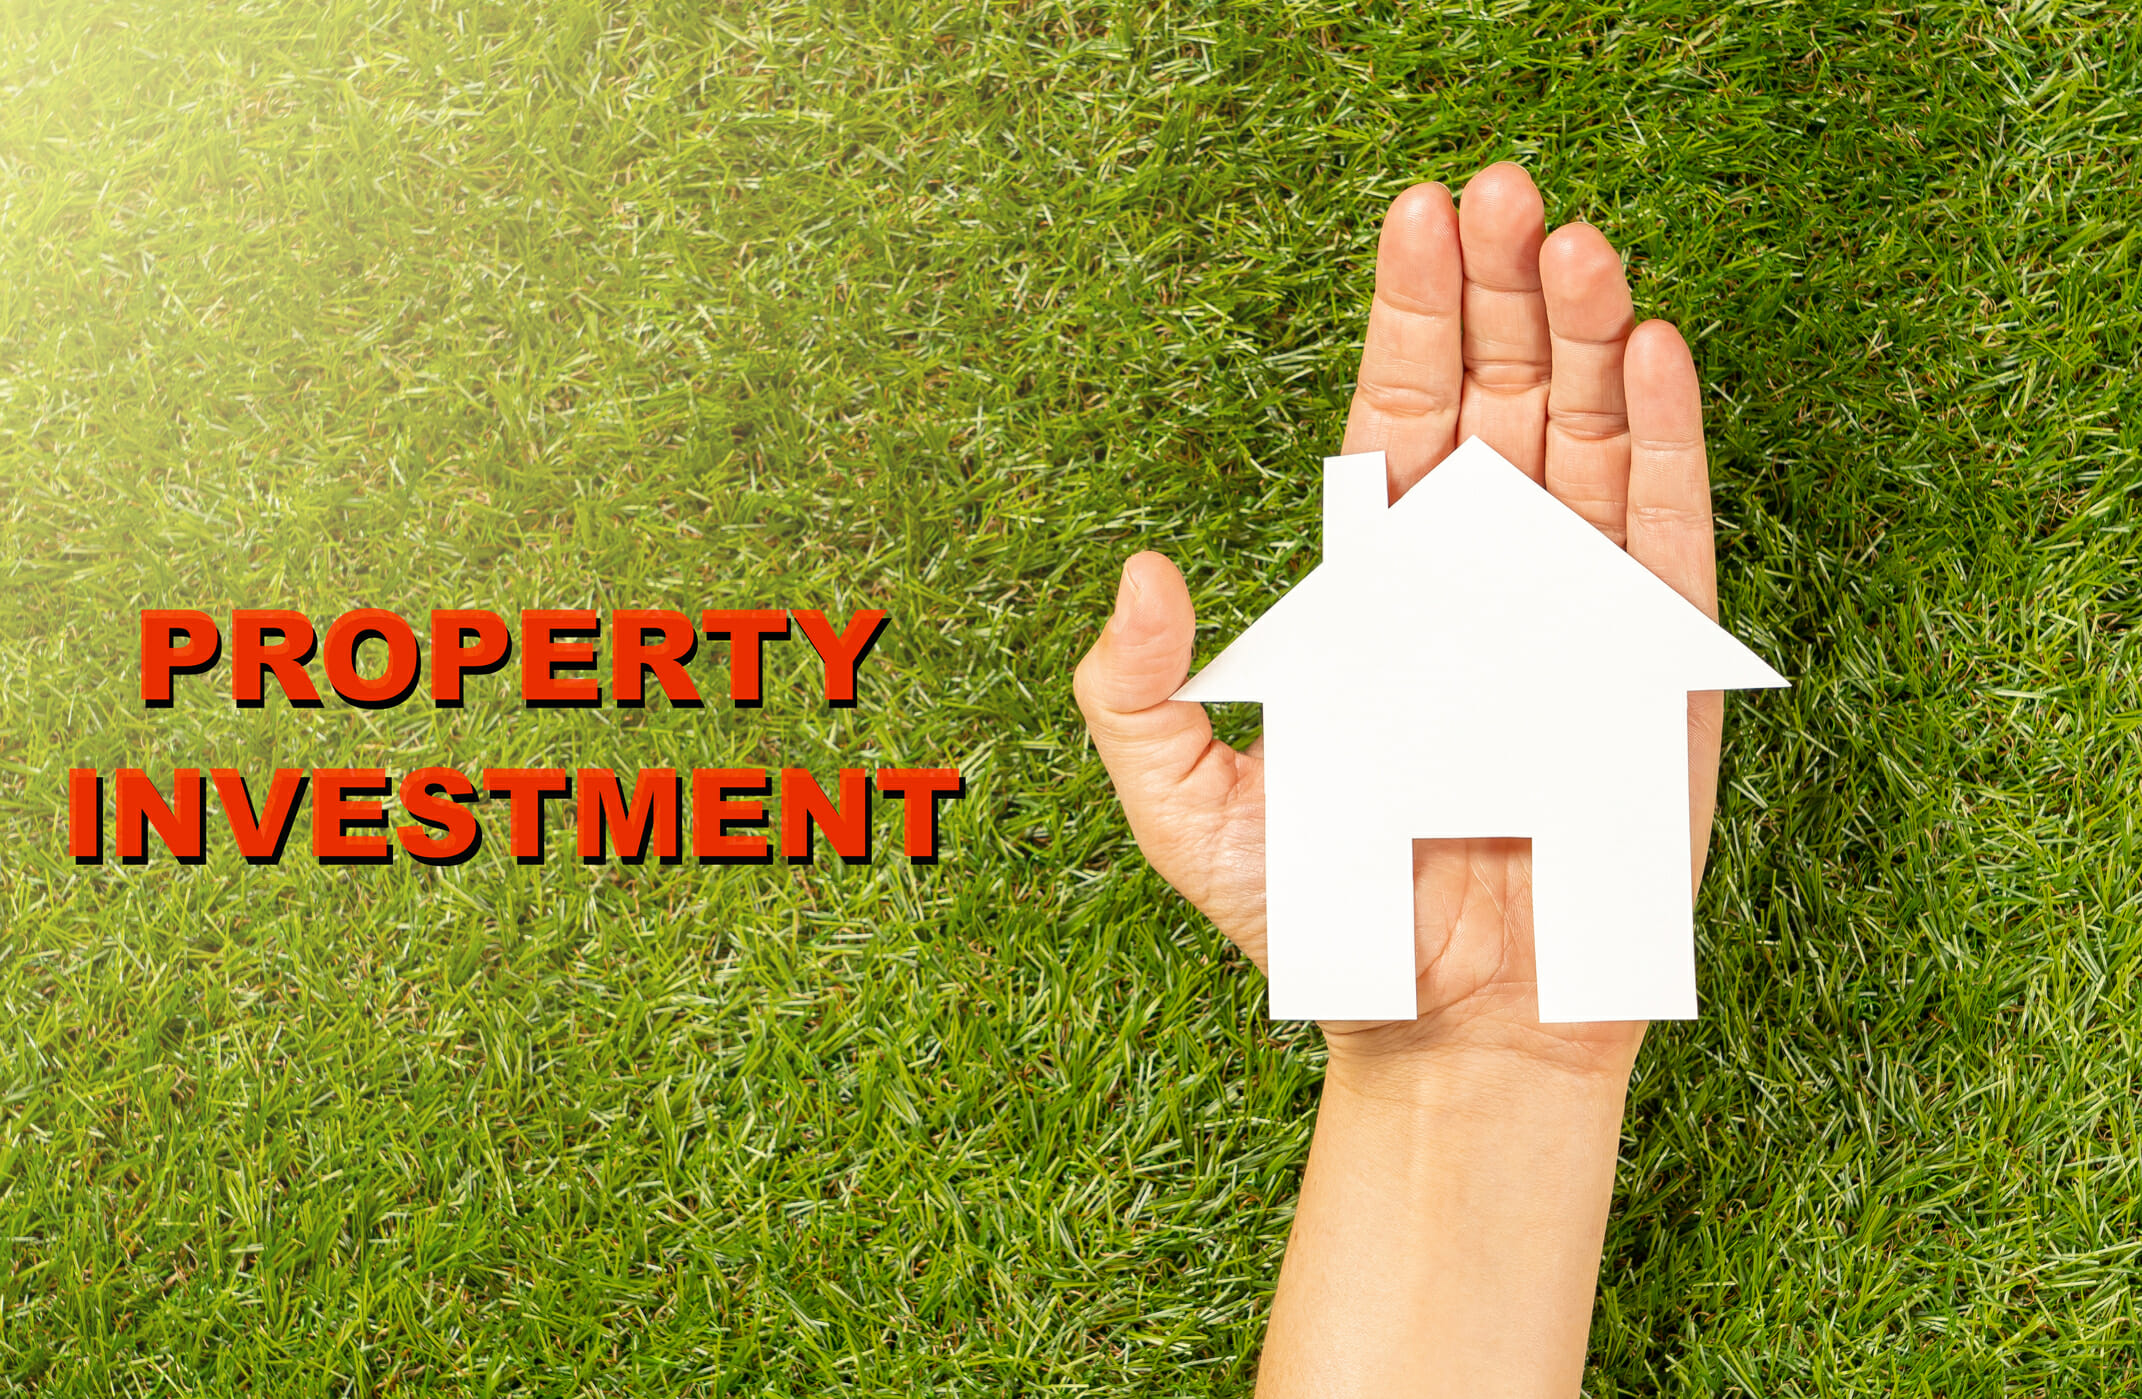 Conceptual picture of woman hand holding white house and Property Investment text written on green grass field top view in Housing Market Real estate buying a home mortgage and loan banking concept.